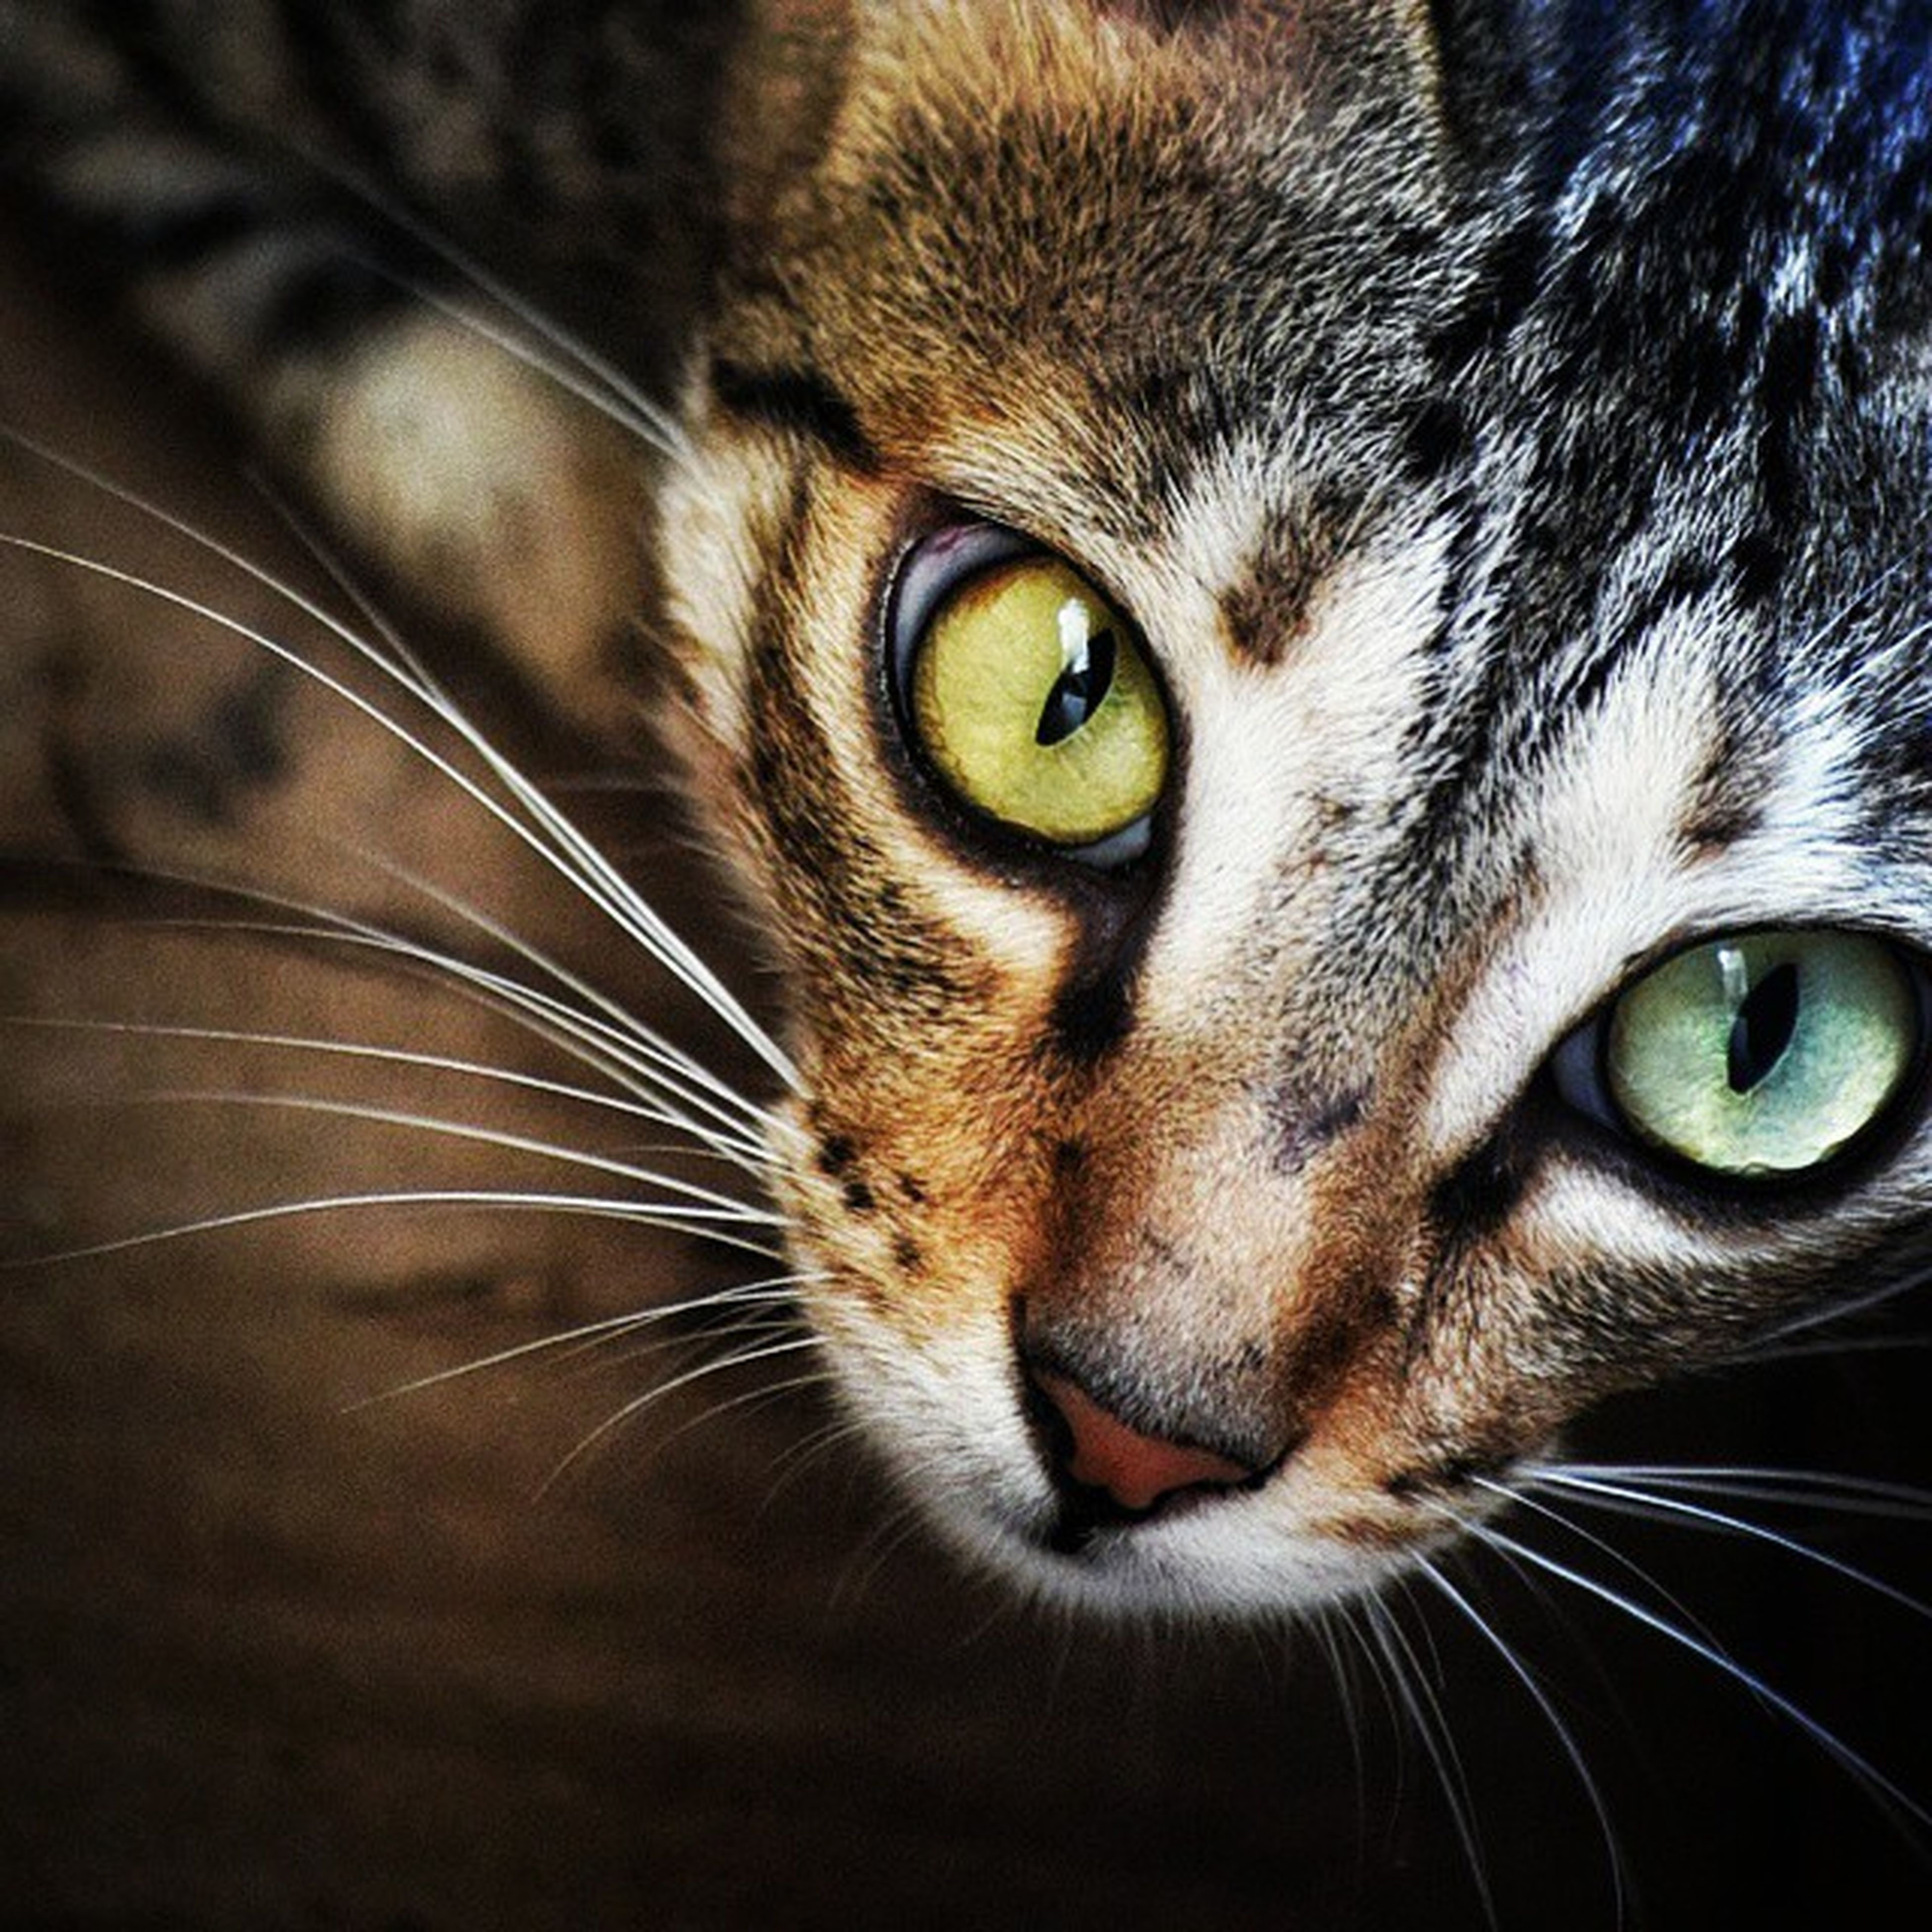 domestic cat, one animal, cat, animal themes, pets, feline, domestic animals, whisker, mammal, animal head, close-up, animal eye, portrait, indoors, looking at camera, animal body part, staring, alertness, front view, snout